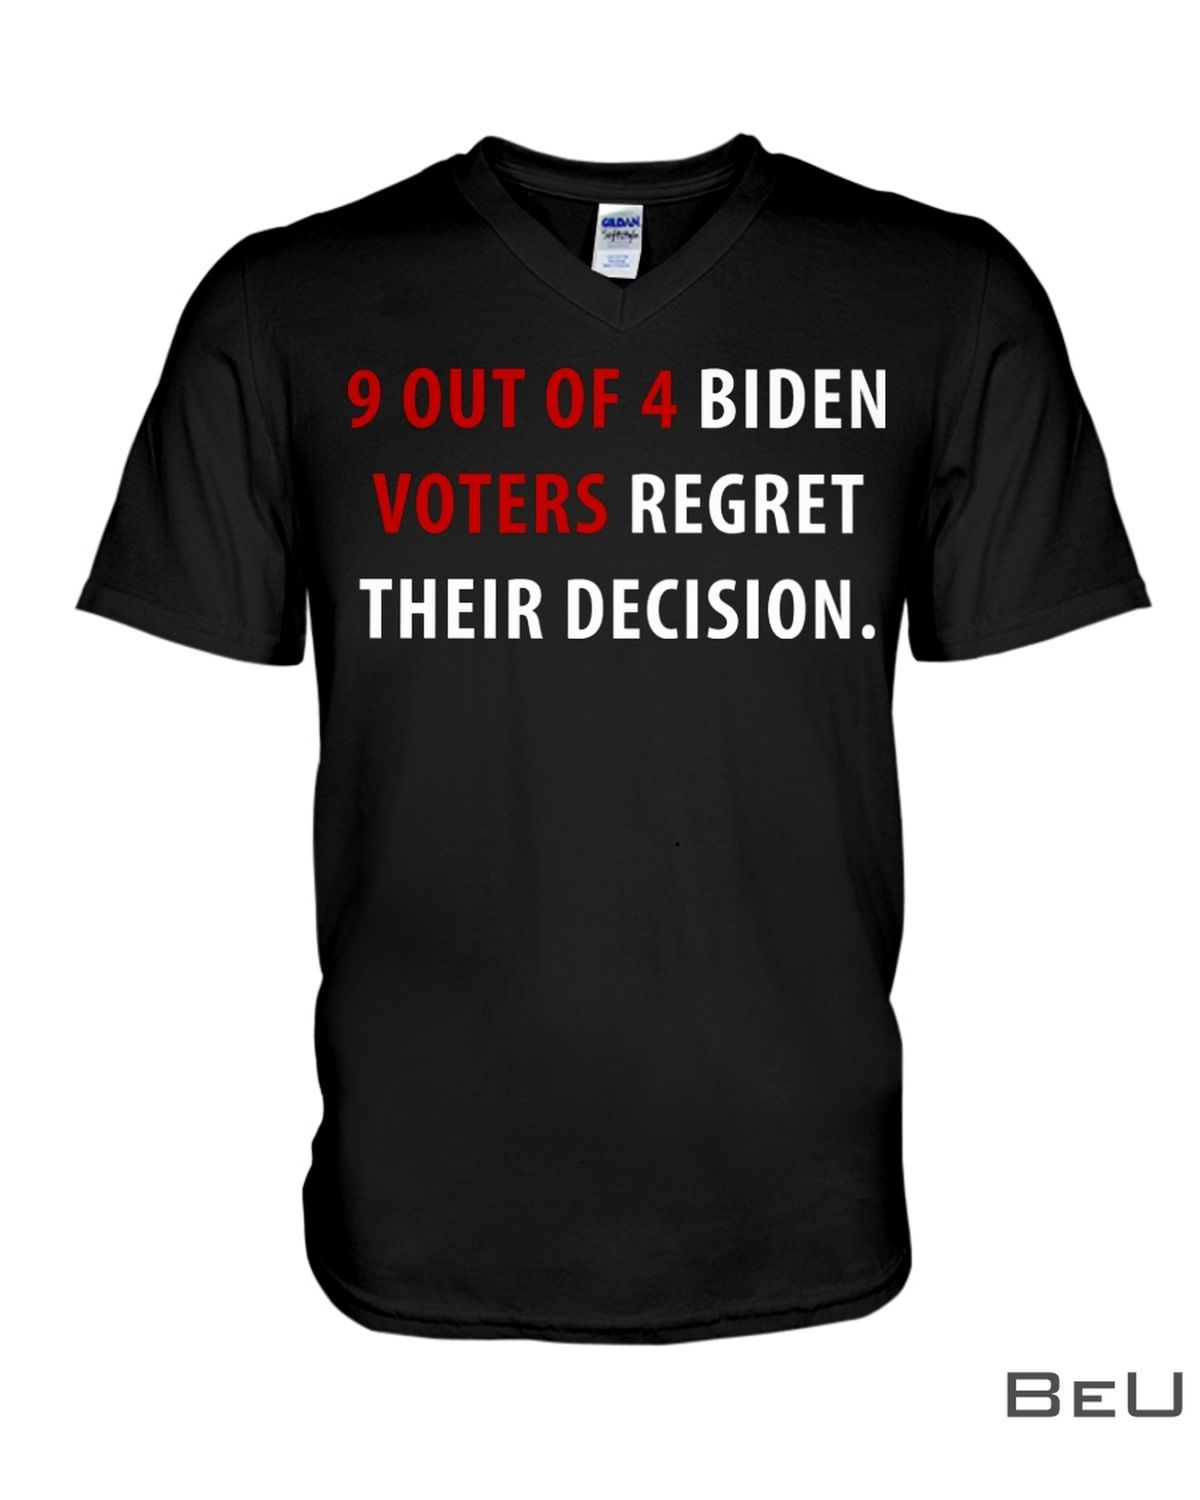 9 Out Of 4 Biden Voters Regret Their Decision Shirt x